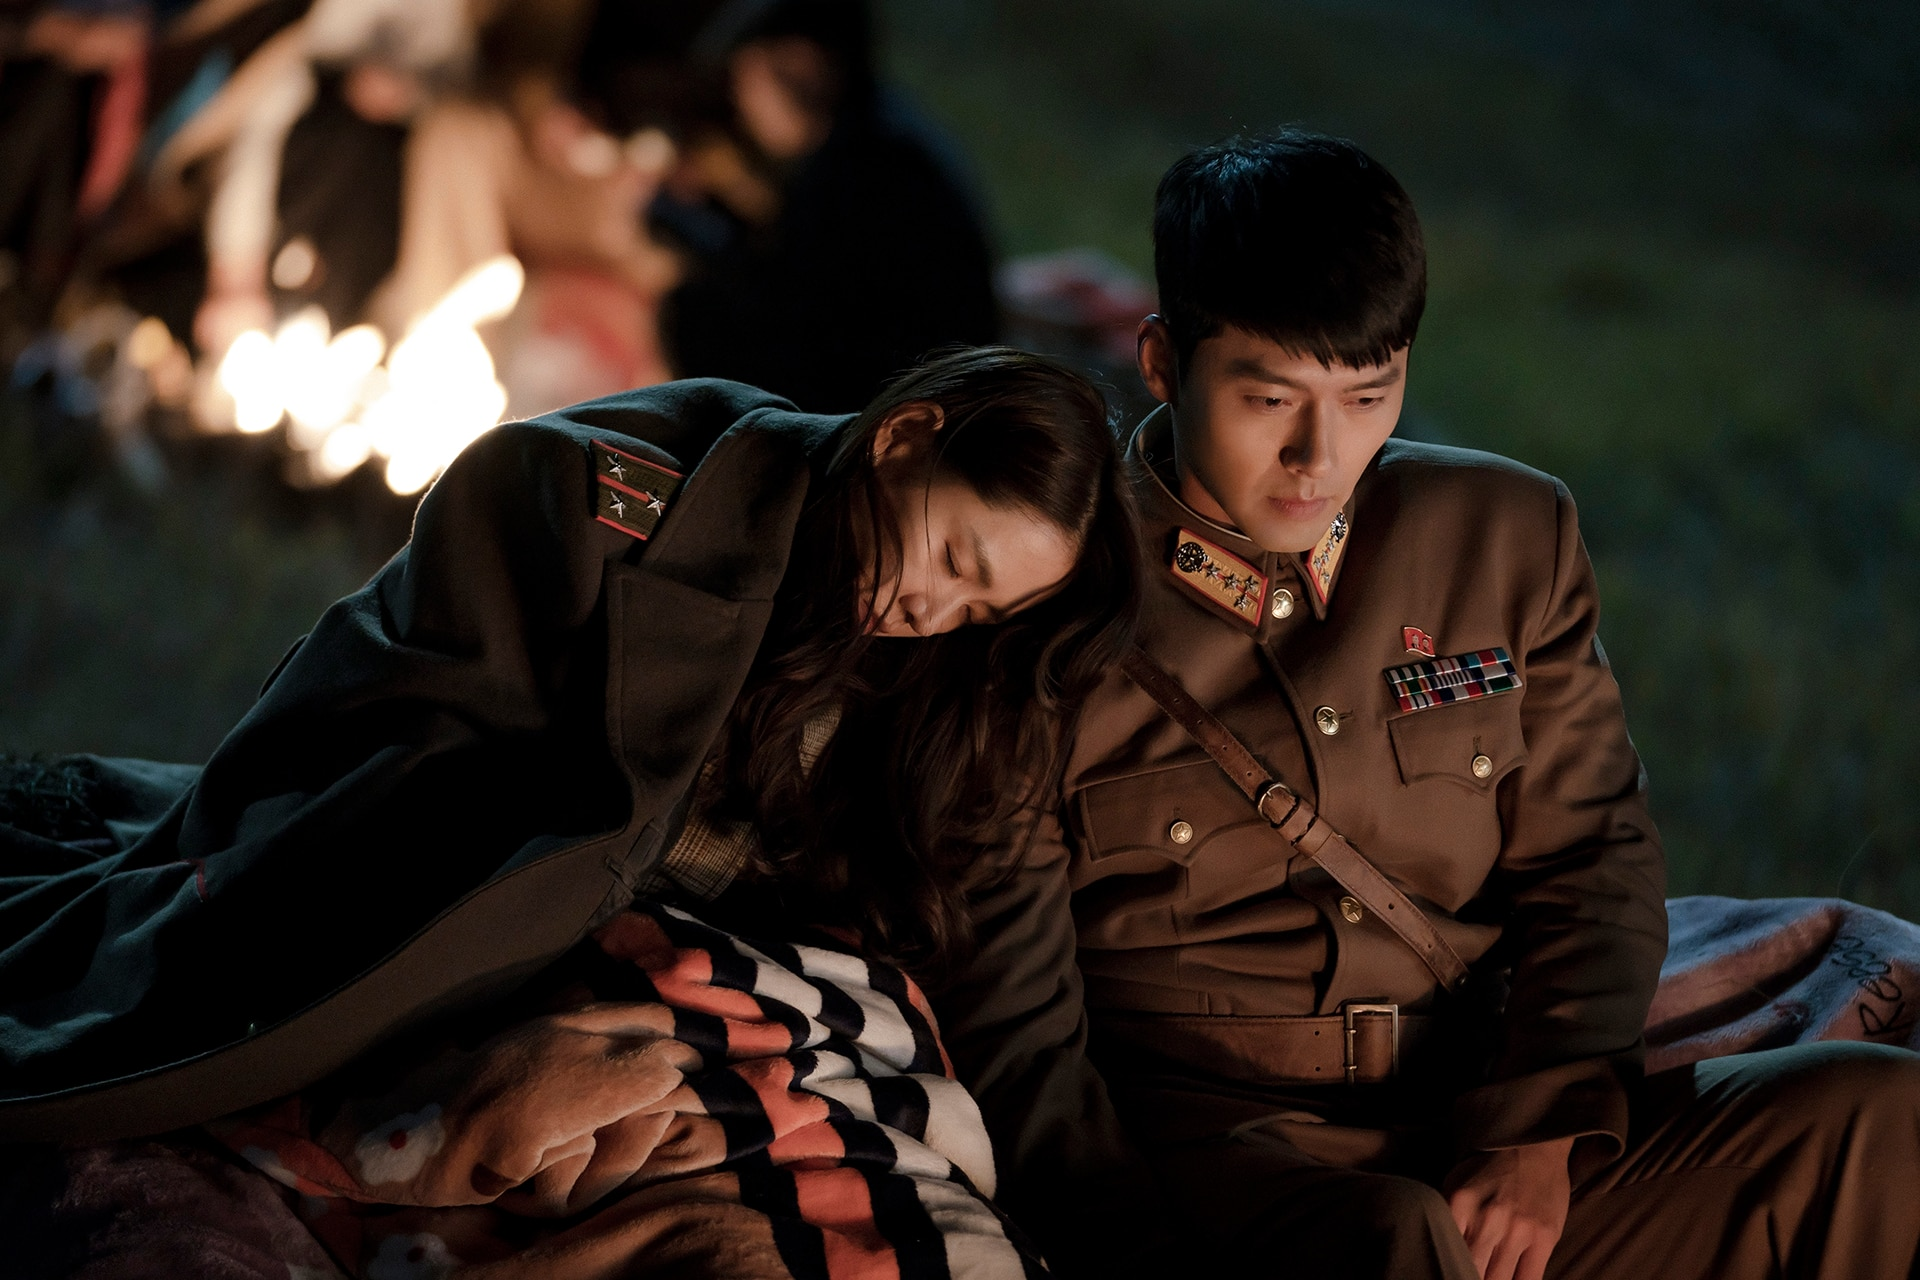 Son Ye-jin and Hyun Bin as Yun Se-ri and Ri Jeong-hyeok